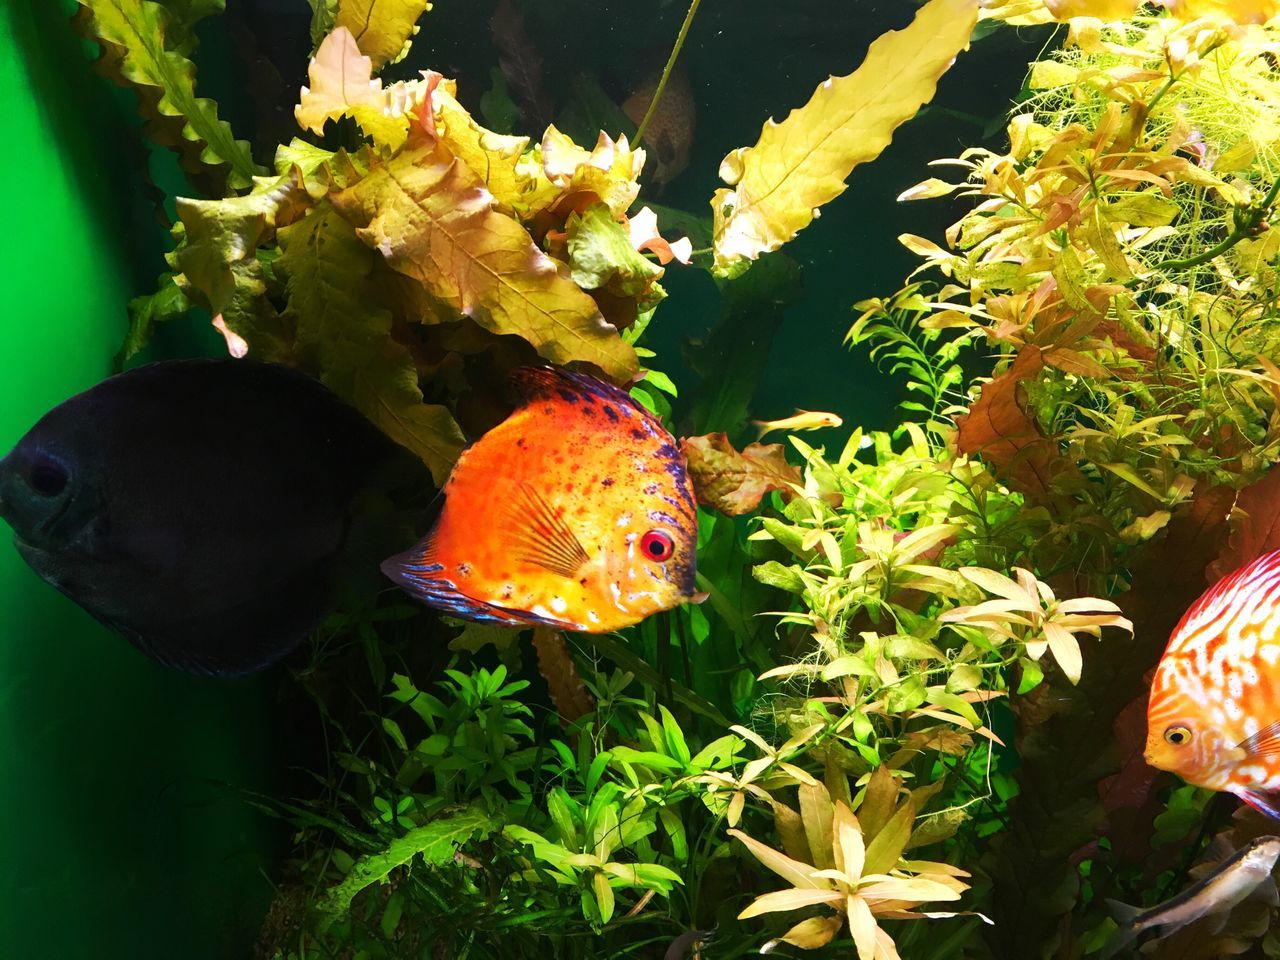 fish, animal themes, nature, green color, plant, no people, leaf, swimming, water, sea life, one animal, animals in the wild, beauty in nature, underwater, close-up, goldfish, day, multi colored, outdoors, aquarium, undersea, mammal